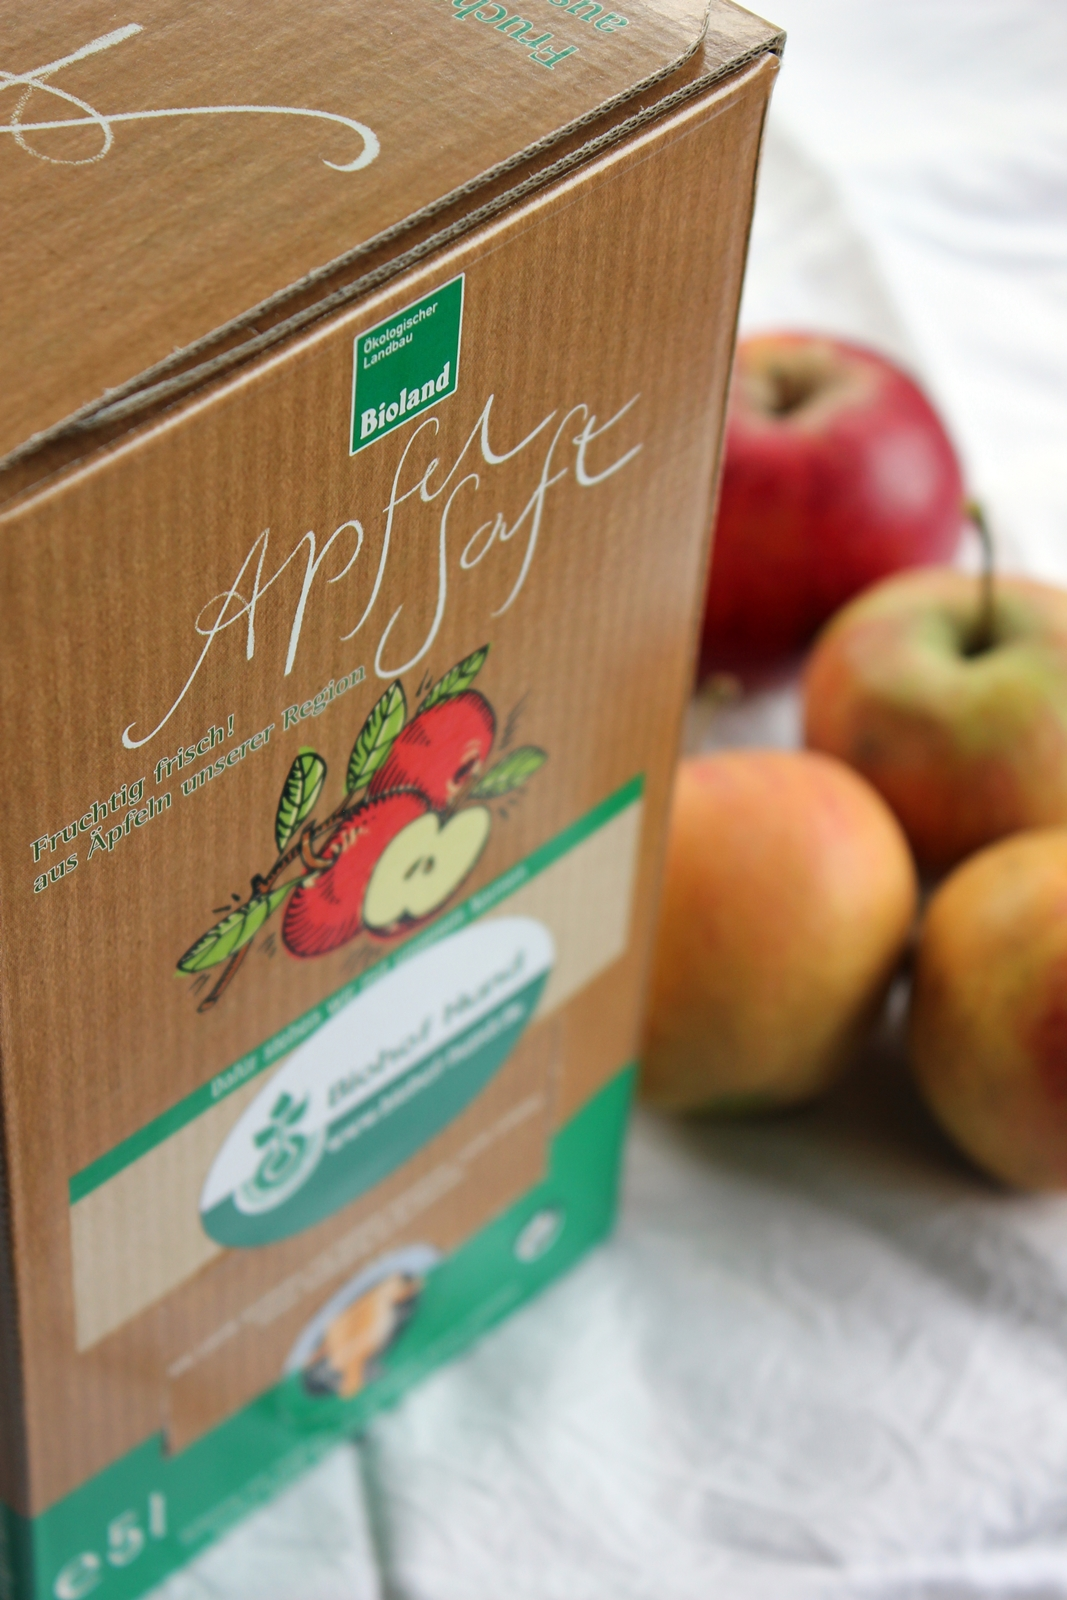 Bag in Box Apfelsaft Biozyklisch-vegan